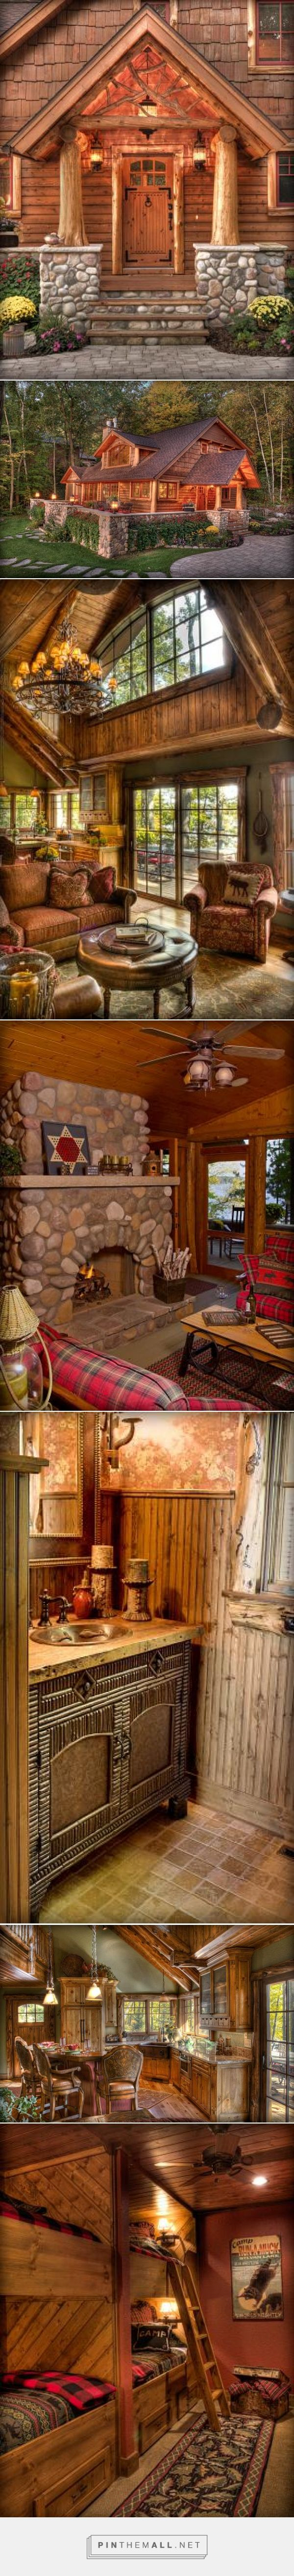 Log Cabin Living Room Decor - This house is ticking off all the boxes for me in what i want in a rustic cabinsrustic homeslog